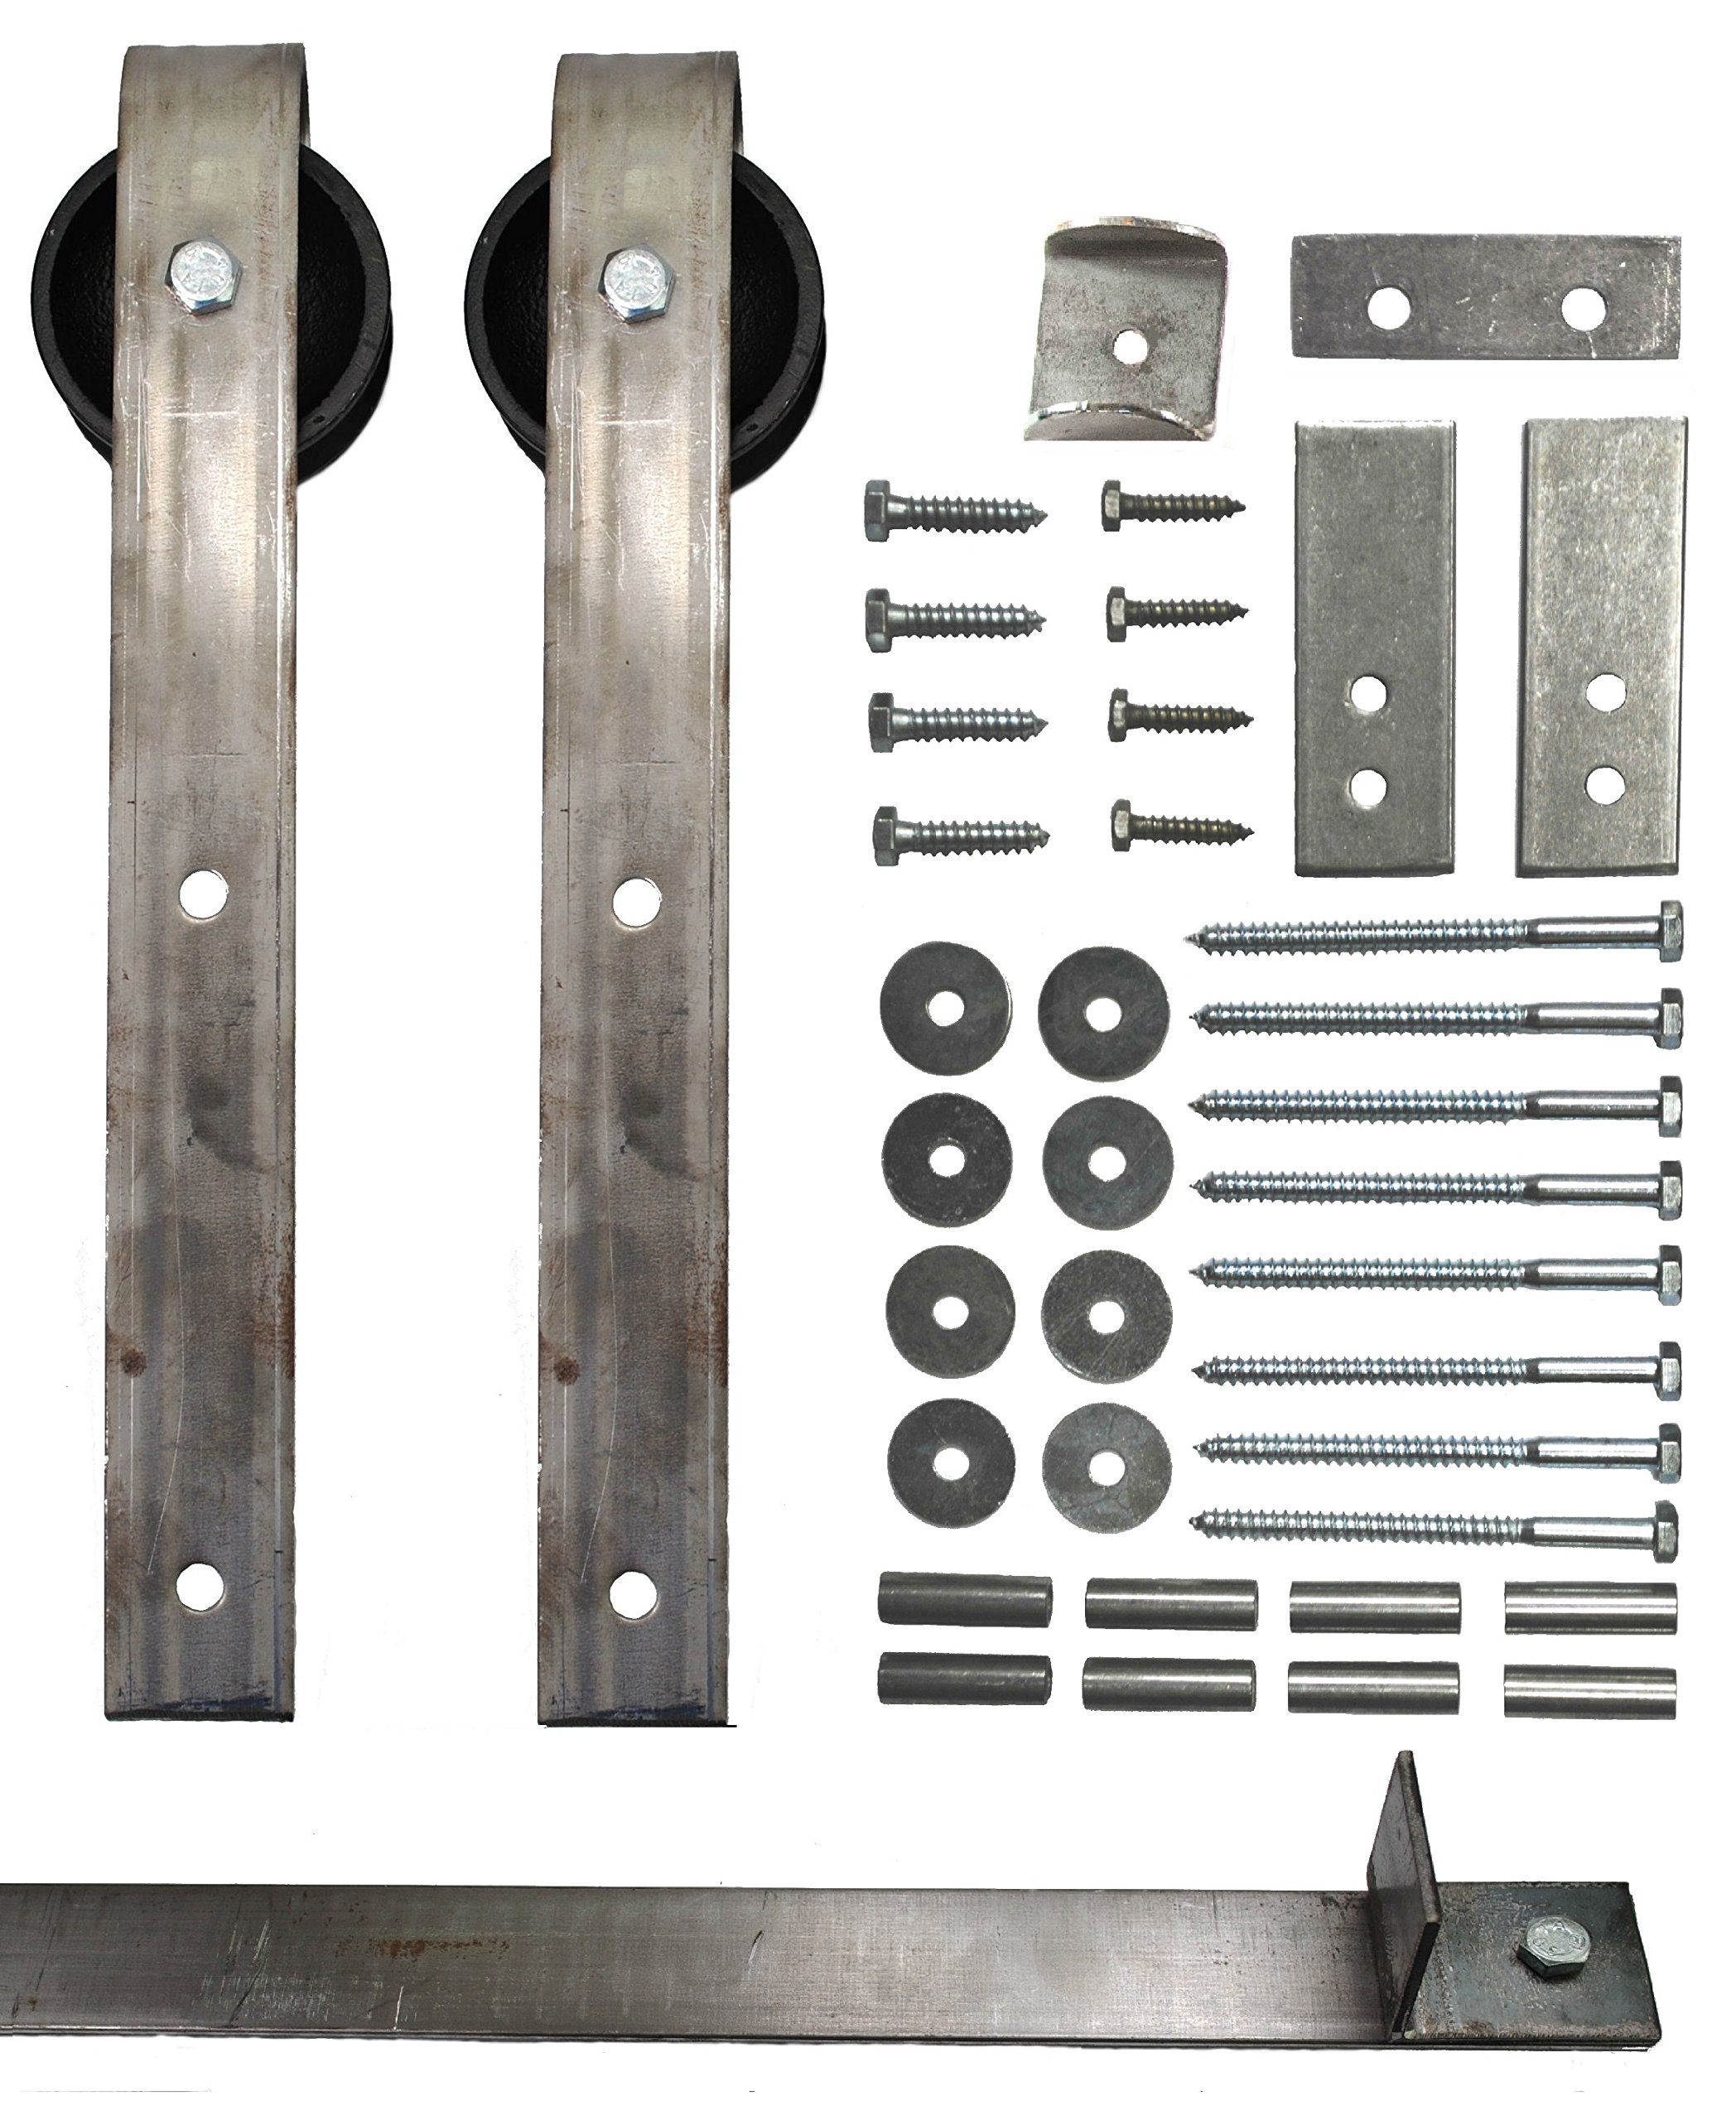 Sliding Barn Door Hardware Kit with 8 Ft. Track Included - Made in USA